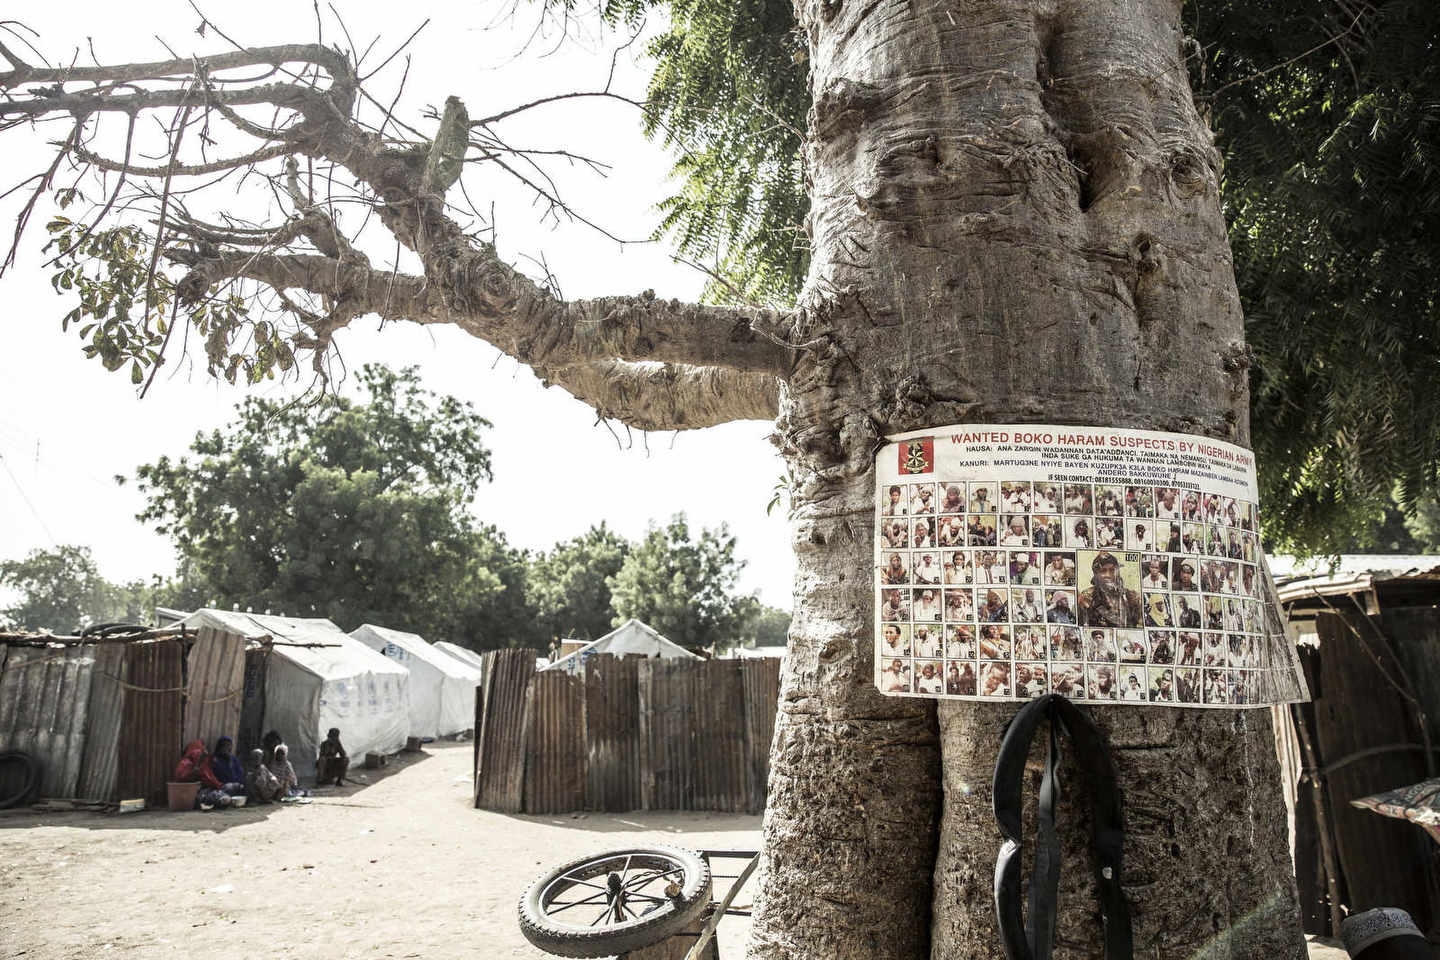 A sign with Boko Haram's most wanted suspects is tied up to a tree in Bama Refugee camp.